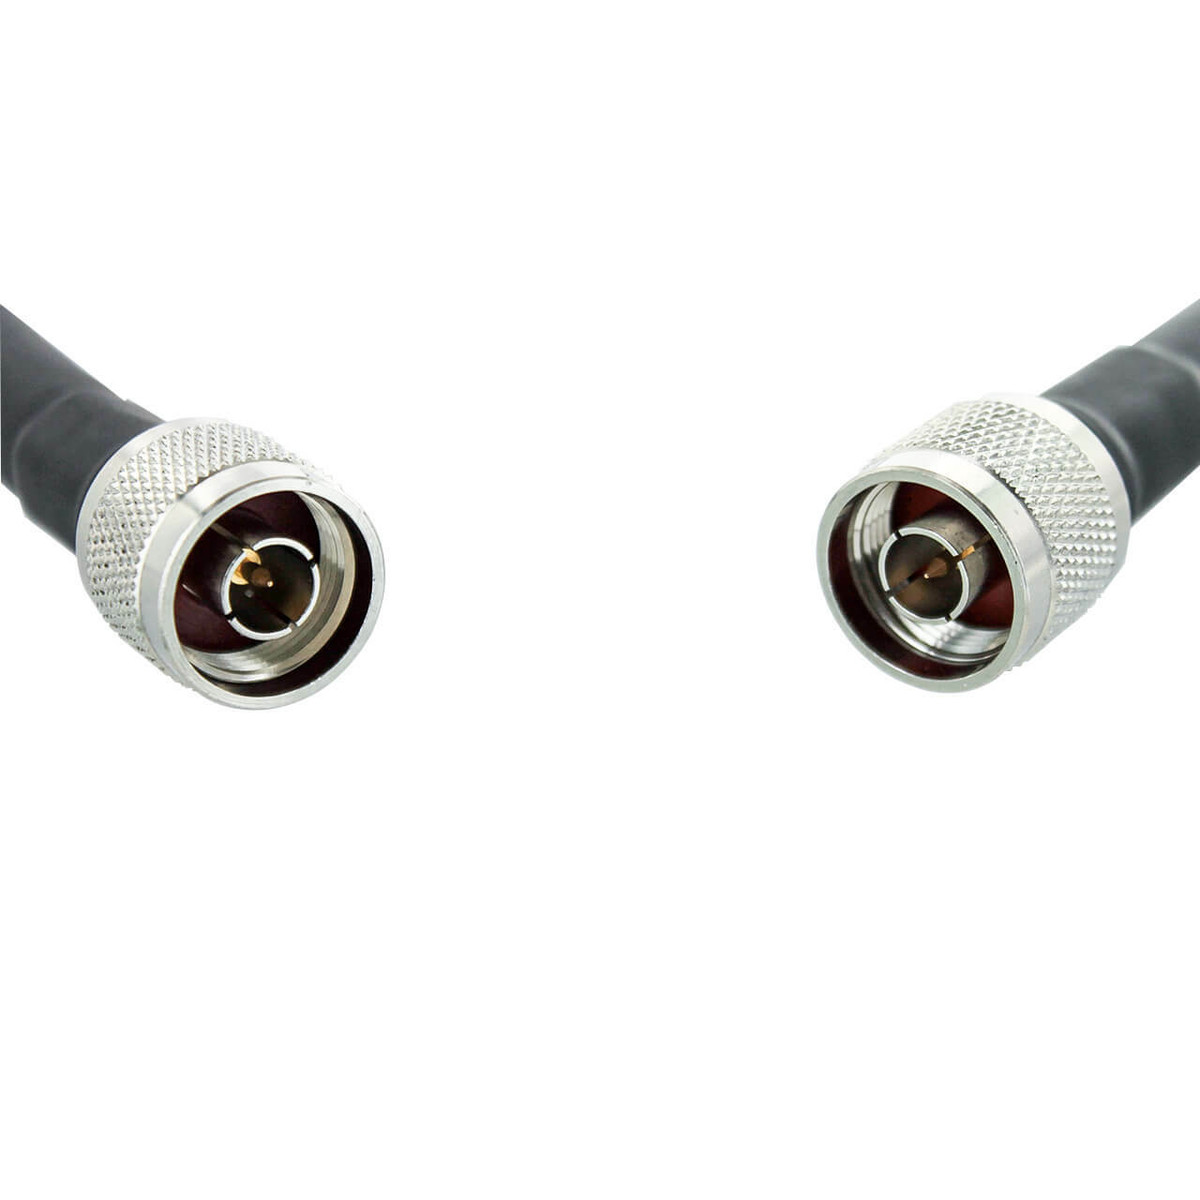 Bolton Tech Bolton Technical N-Male to N-Male Bolton400 Ultra Low-Loss Coax Cable or 20 ft Cable